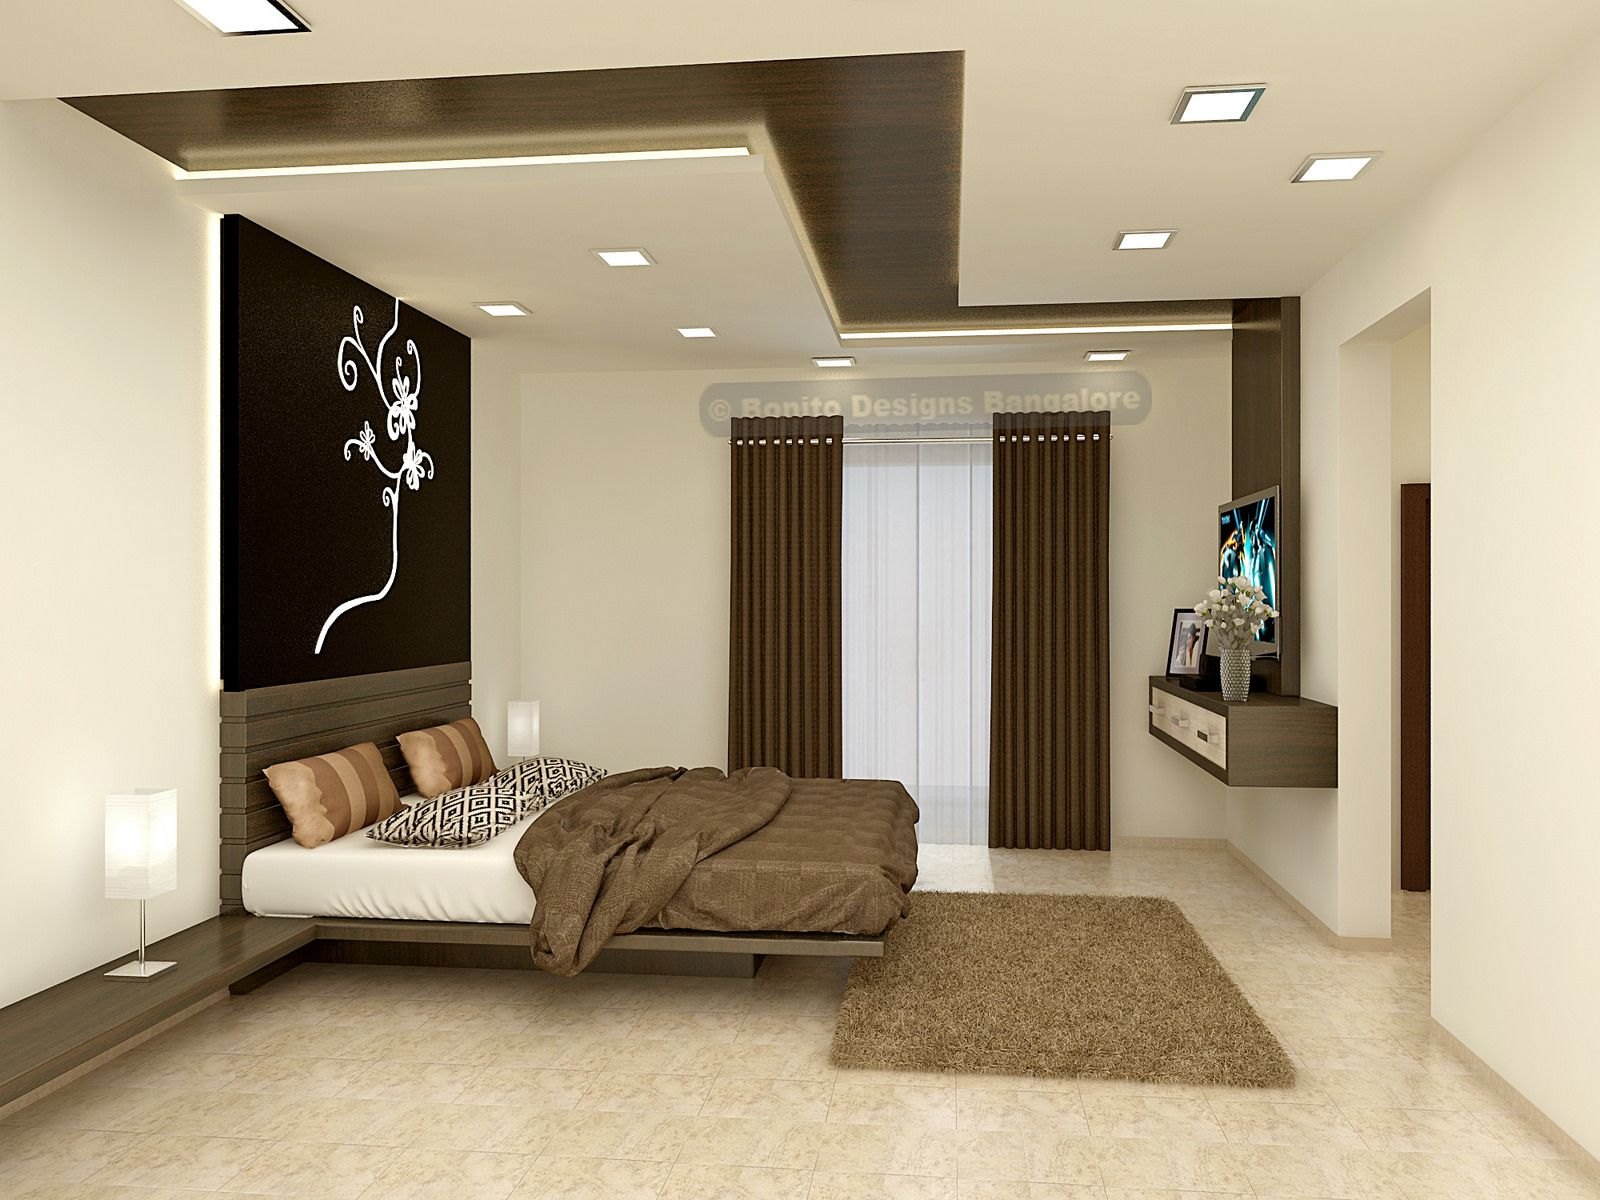 Living Room Ceiling Designs Captivating 15 Modern Ceiling Design Ideas For Your Home  Modern Living Decorating Design